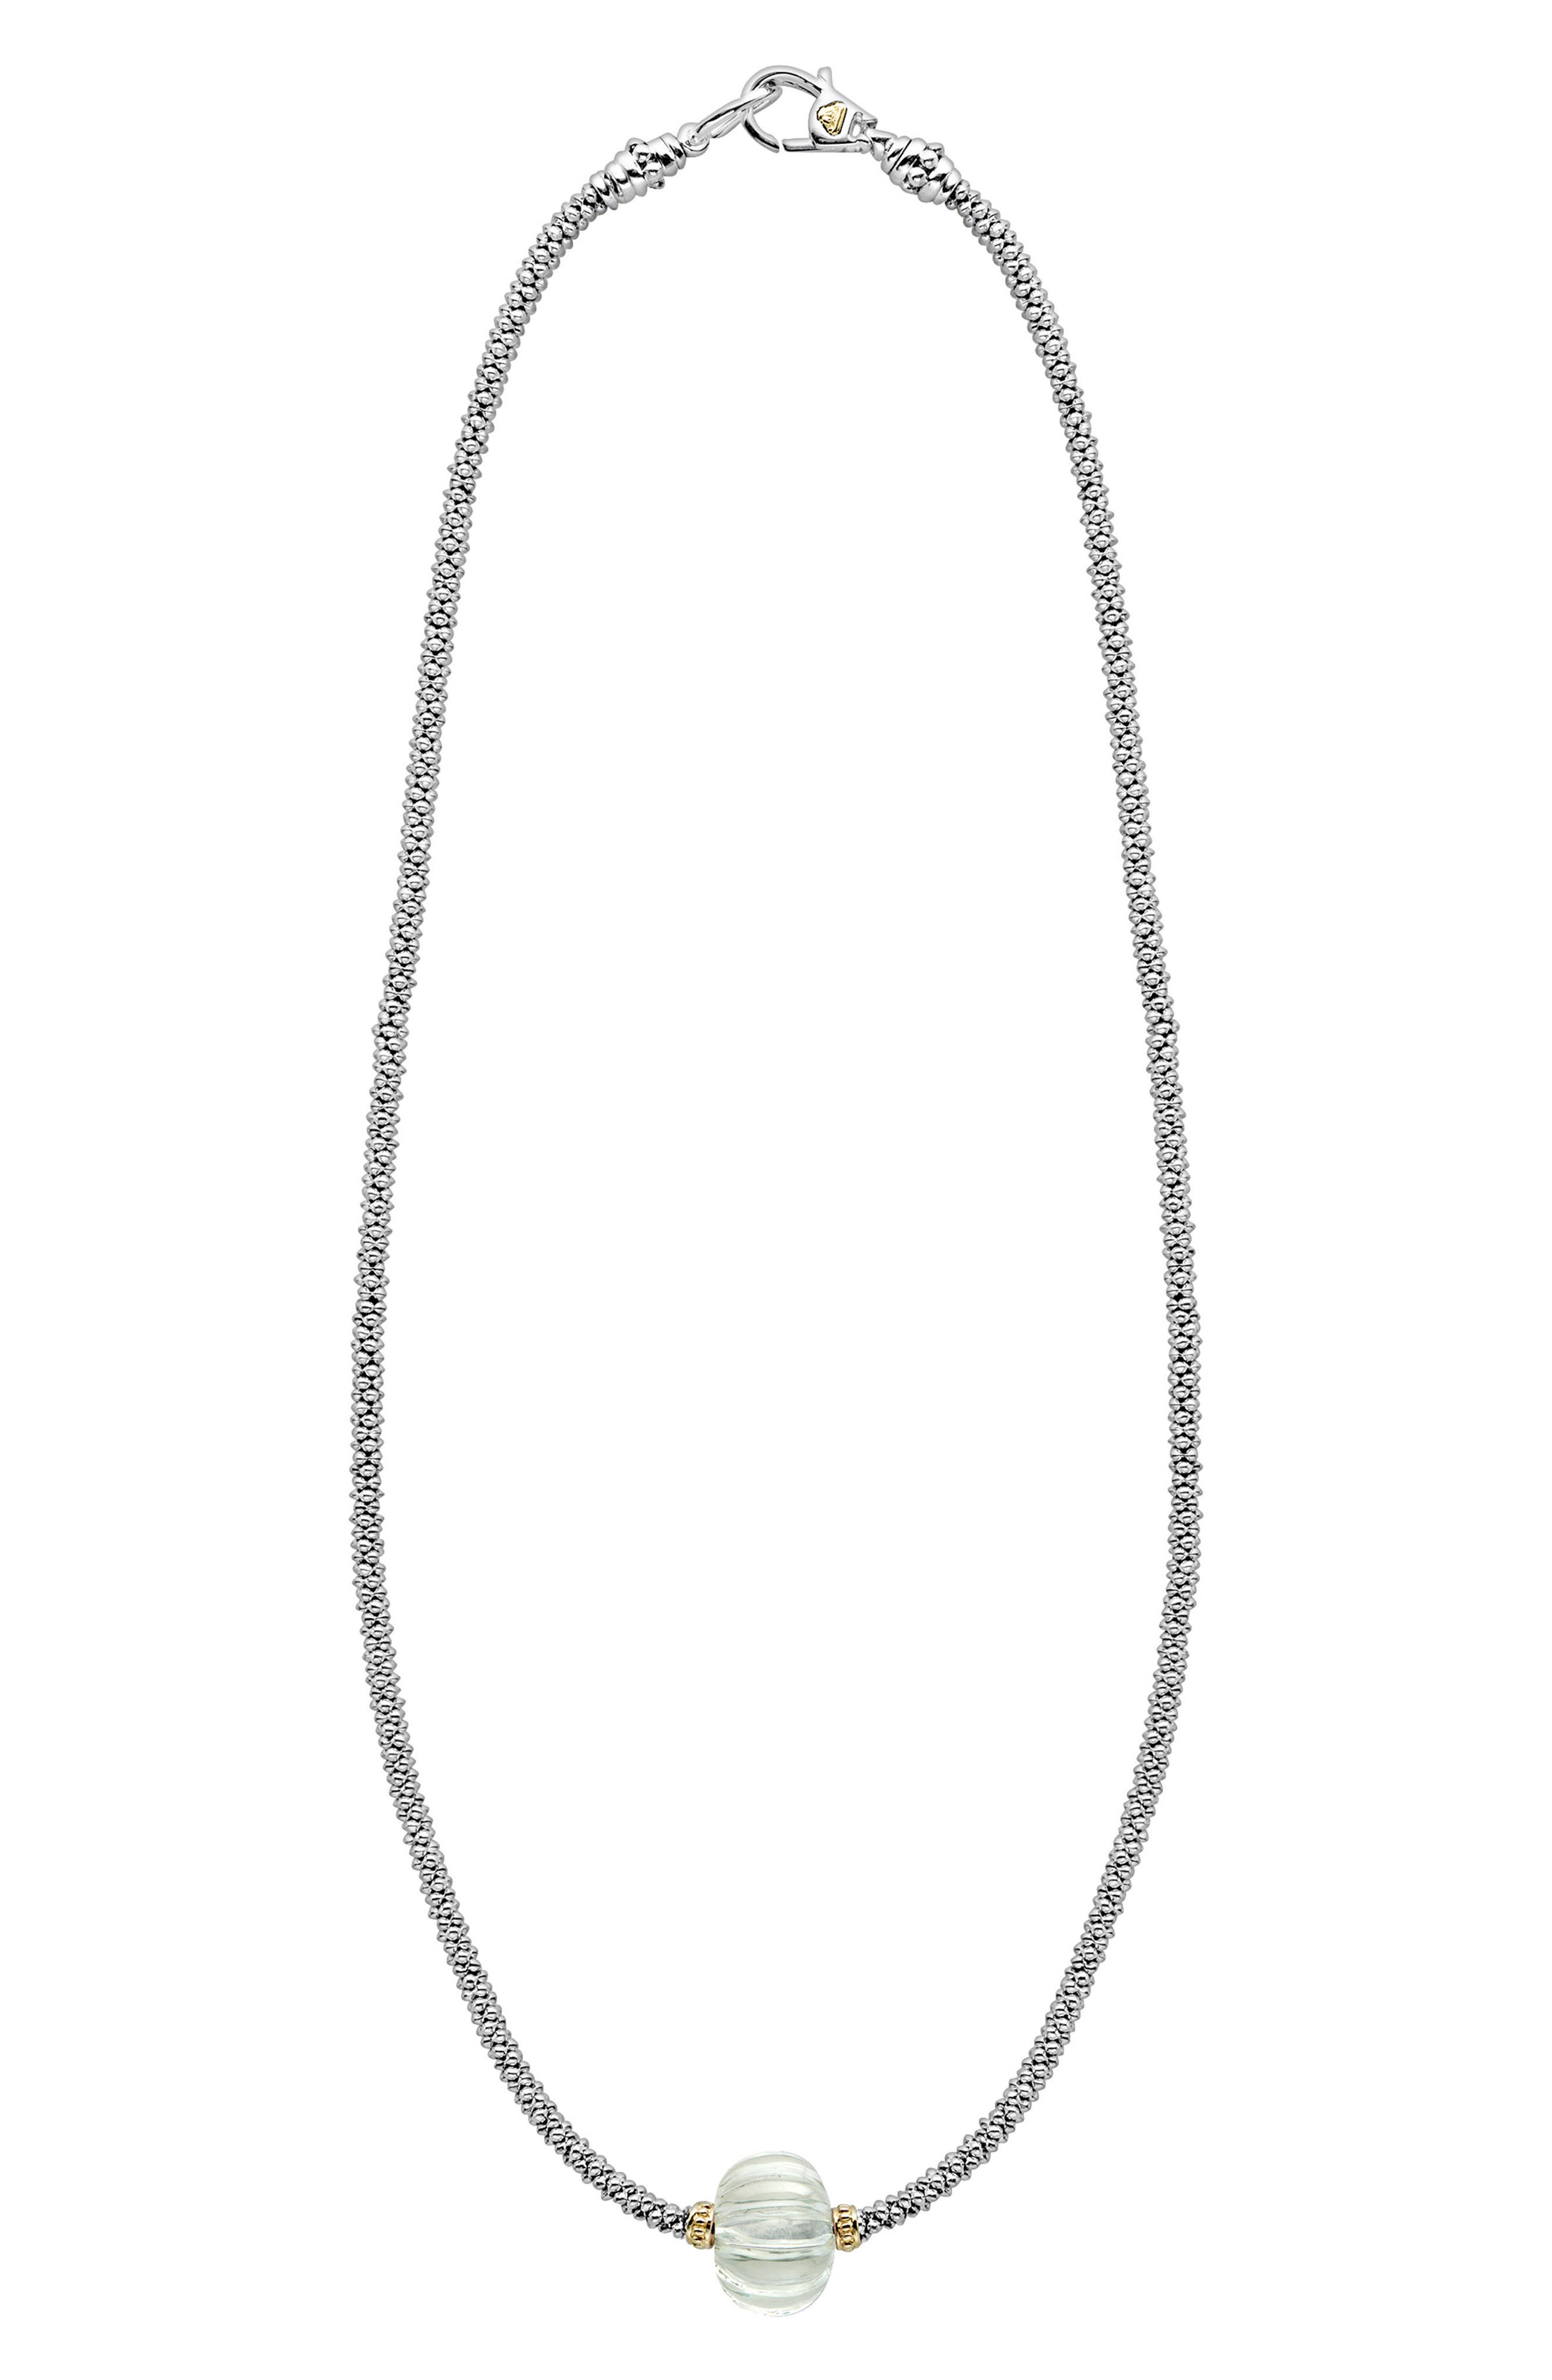 Caviar Forever Melon Bead Rope Necklace,                         Main,                         color, 300